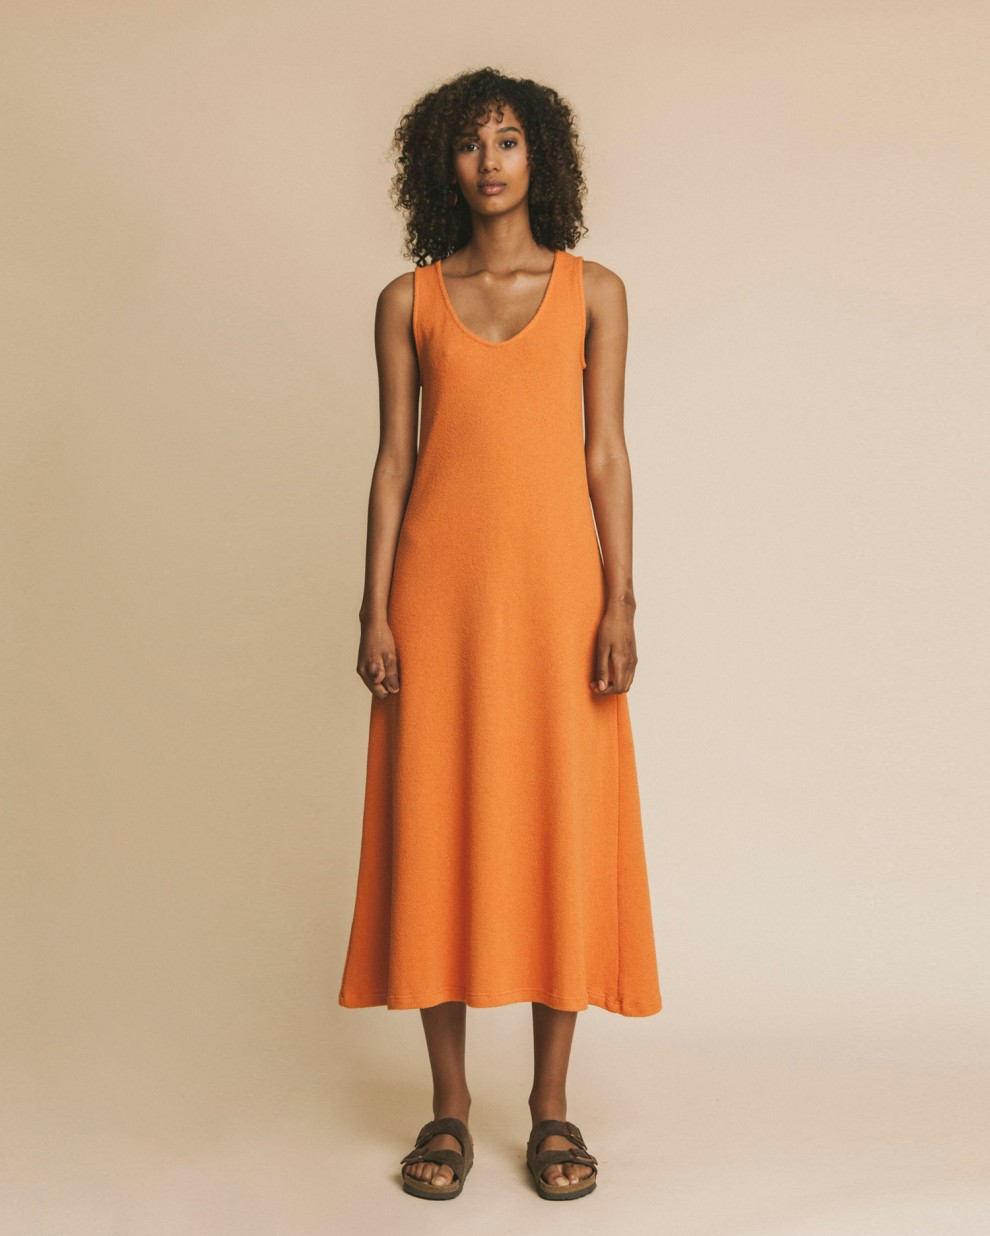 Terracotta Ladgo dress